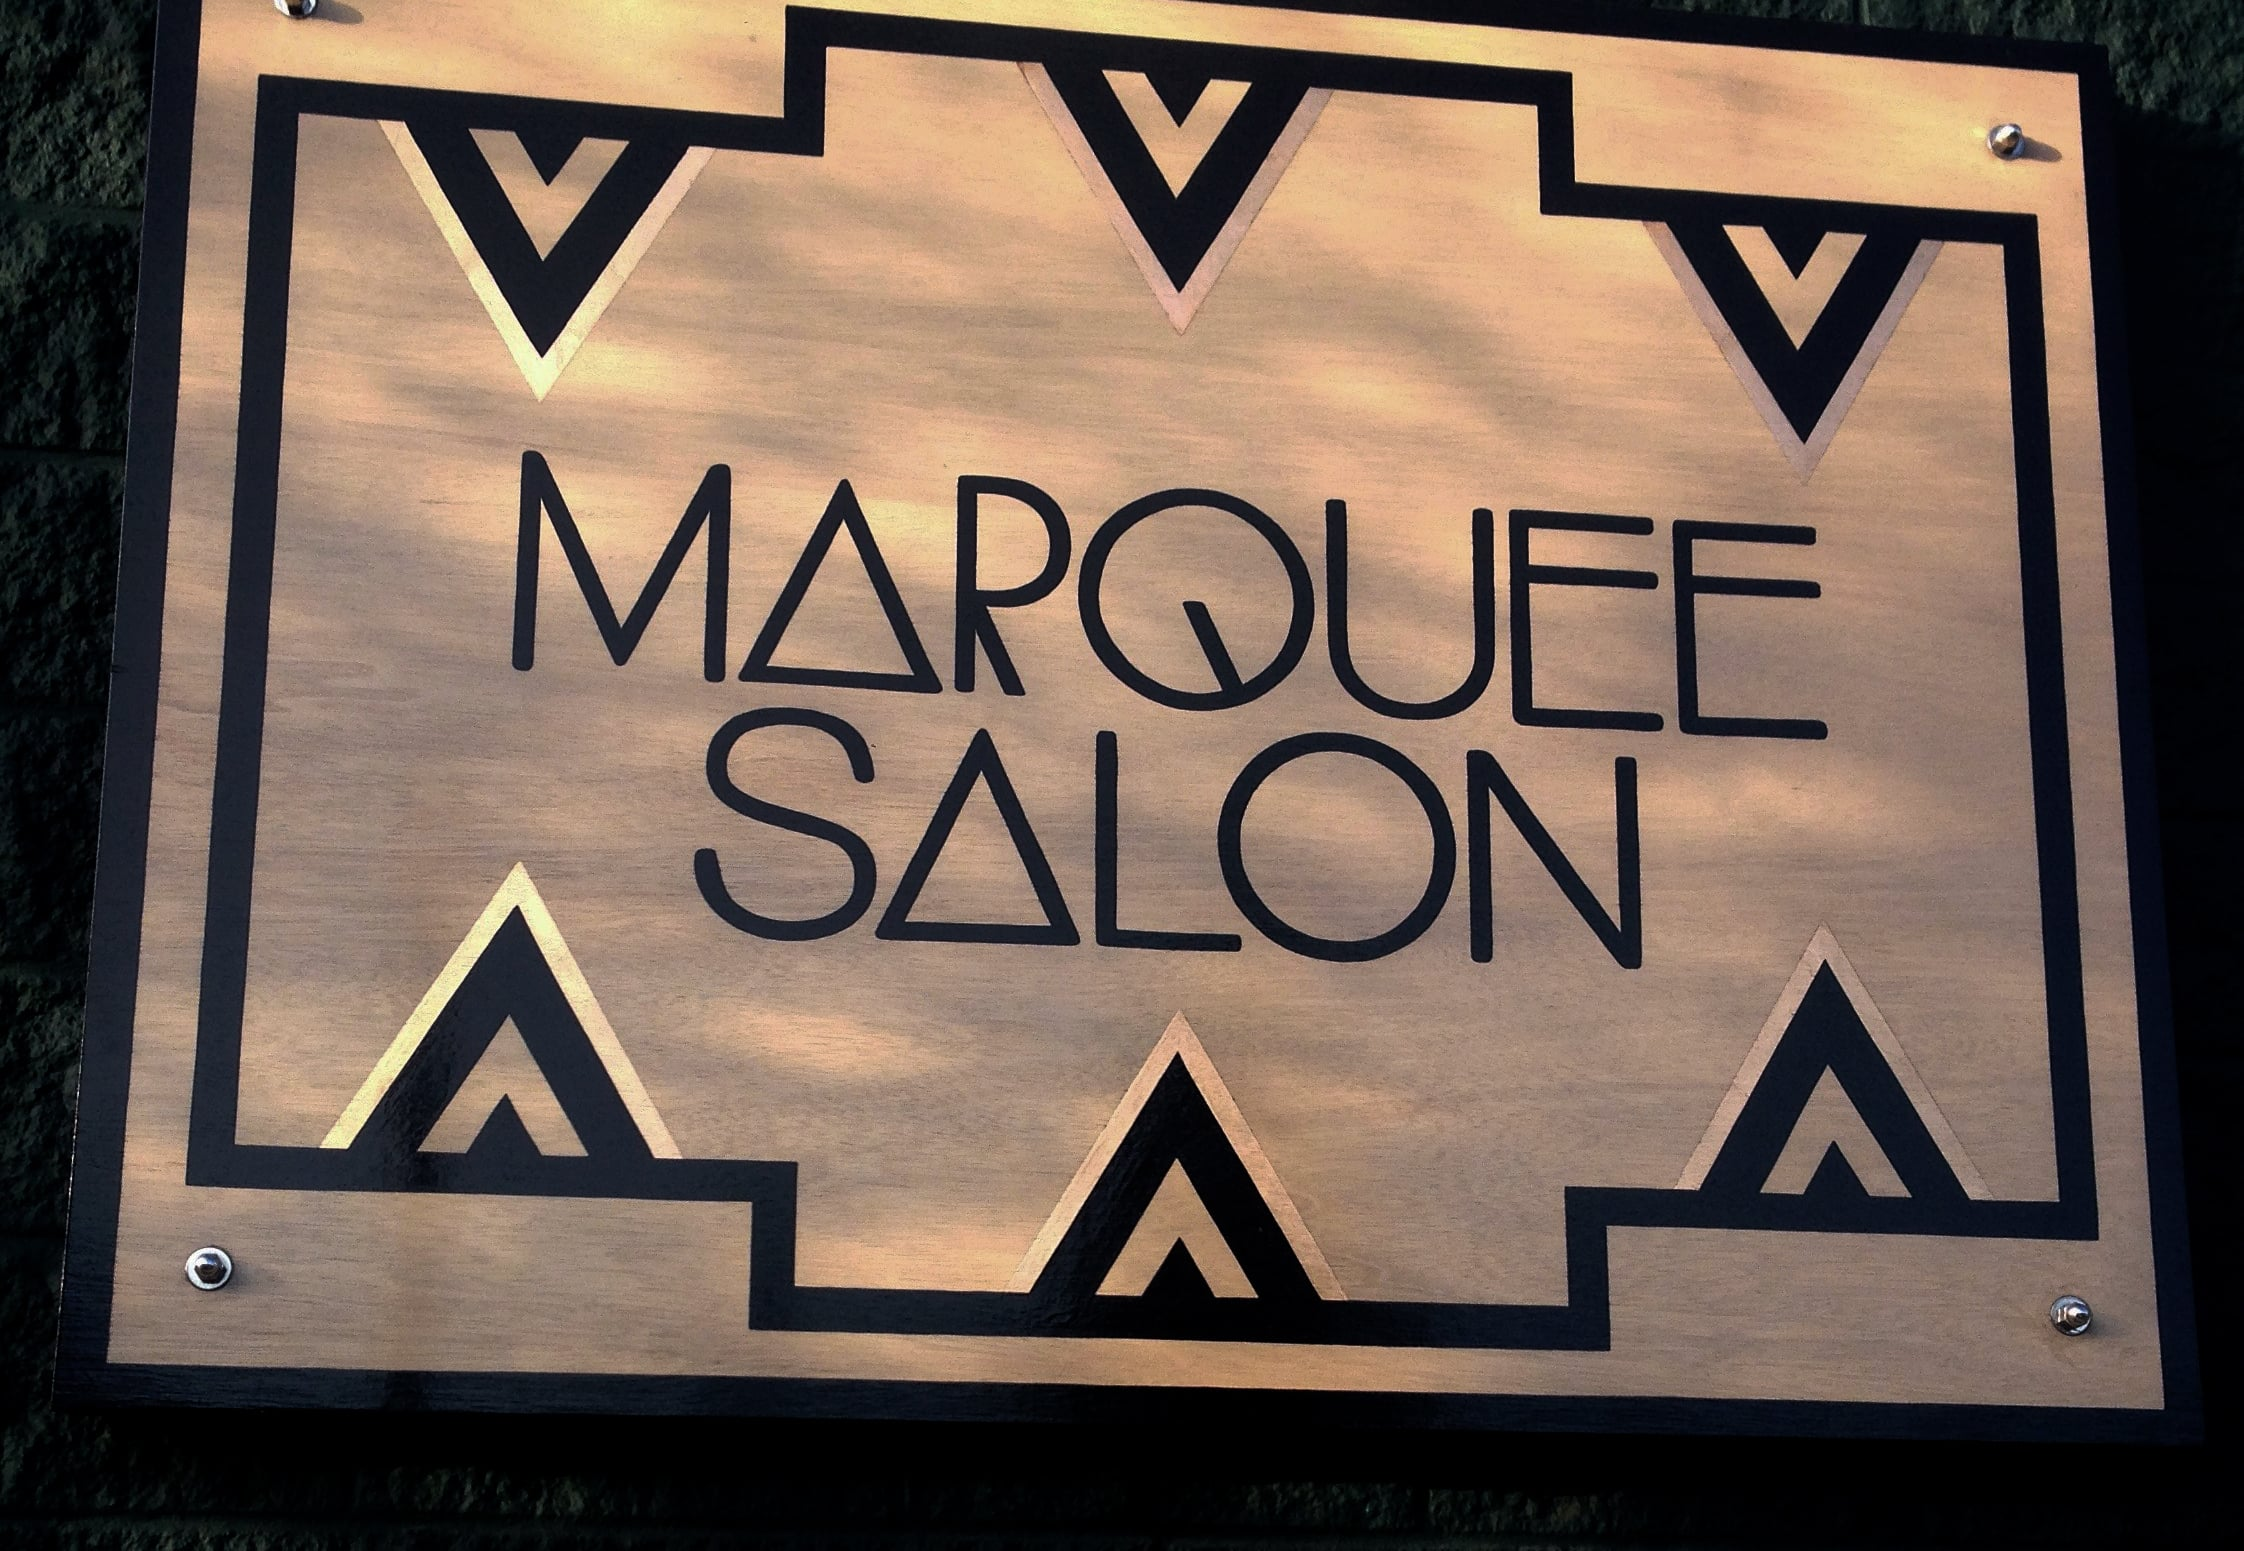 STARCADE DESIGNS CUSTOM DESIGN FOR MARQUEE SALON SIGNAGE/ CUSTOM SIGN PAINTING AND COPPER FOIL APPLICATION BY SF SIGNS /©MARQUEE SALON  .